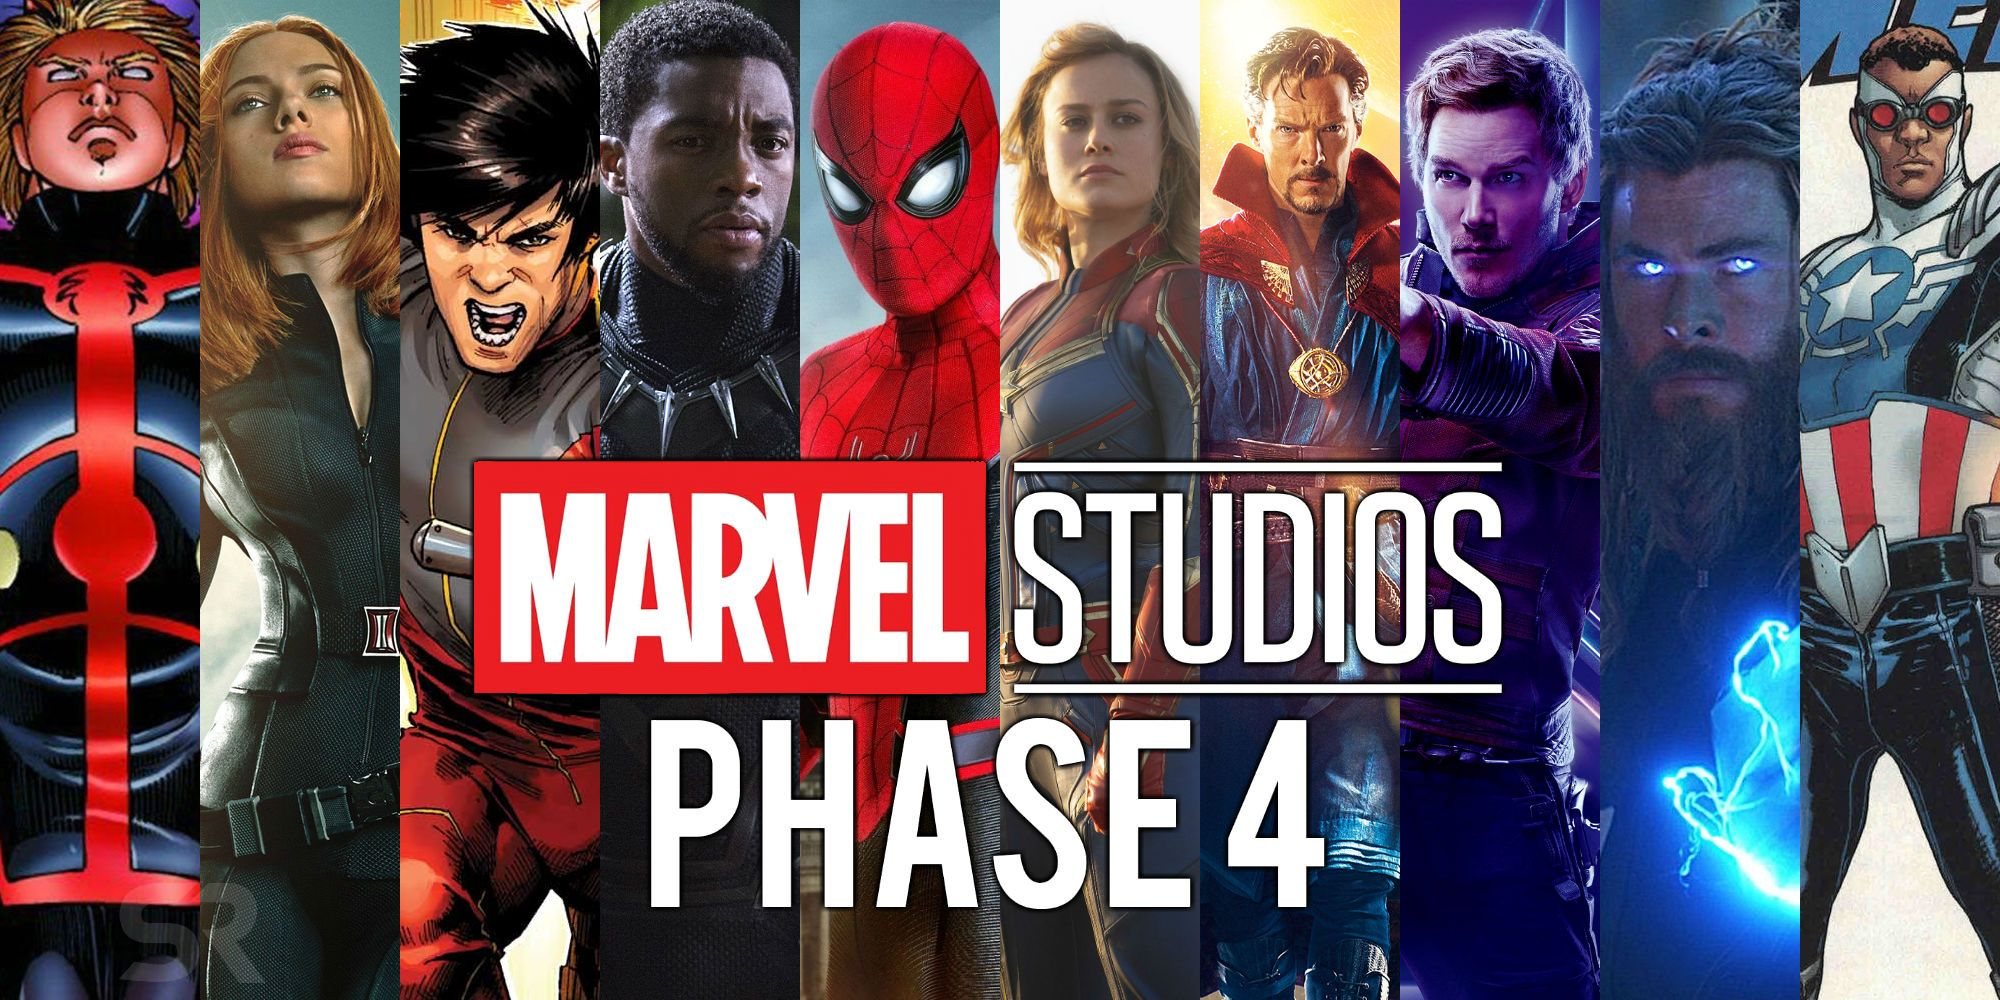 Kevin Feige Says The Multiverse is Key to the MCU's Future